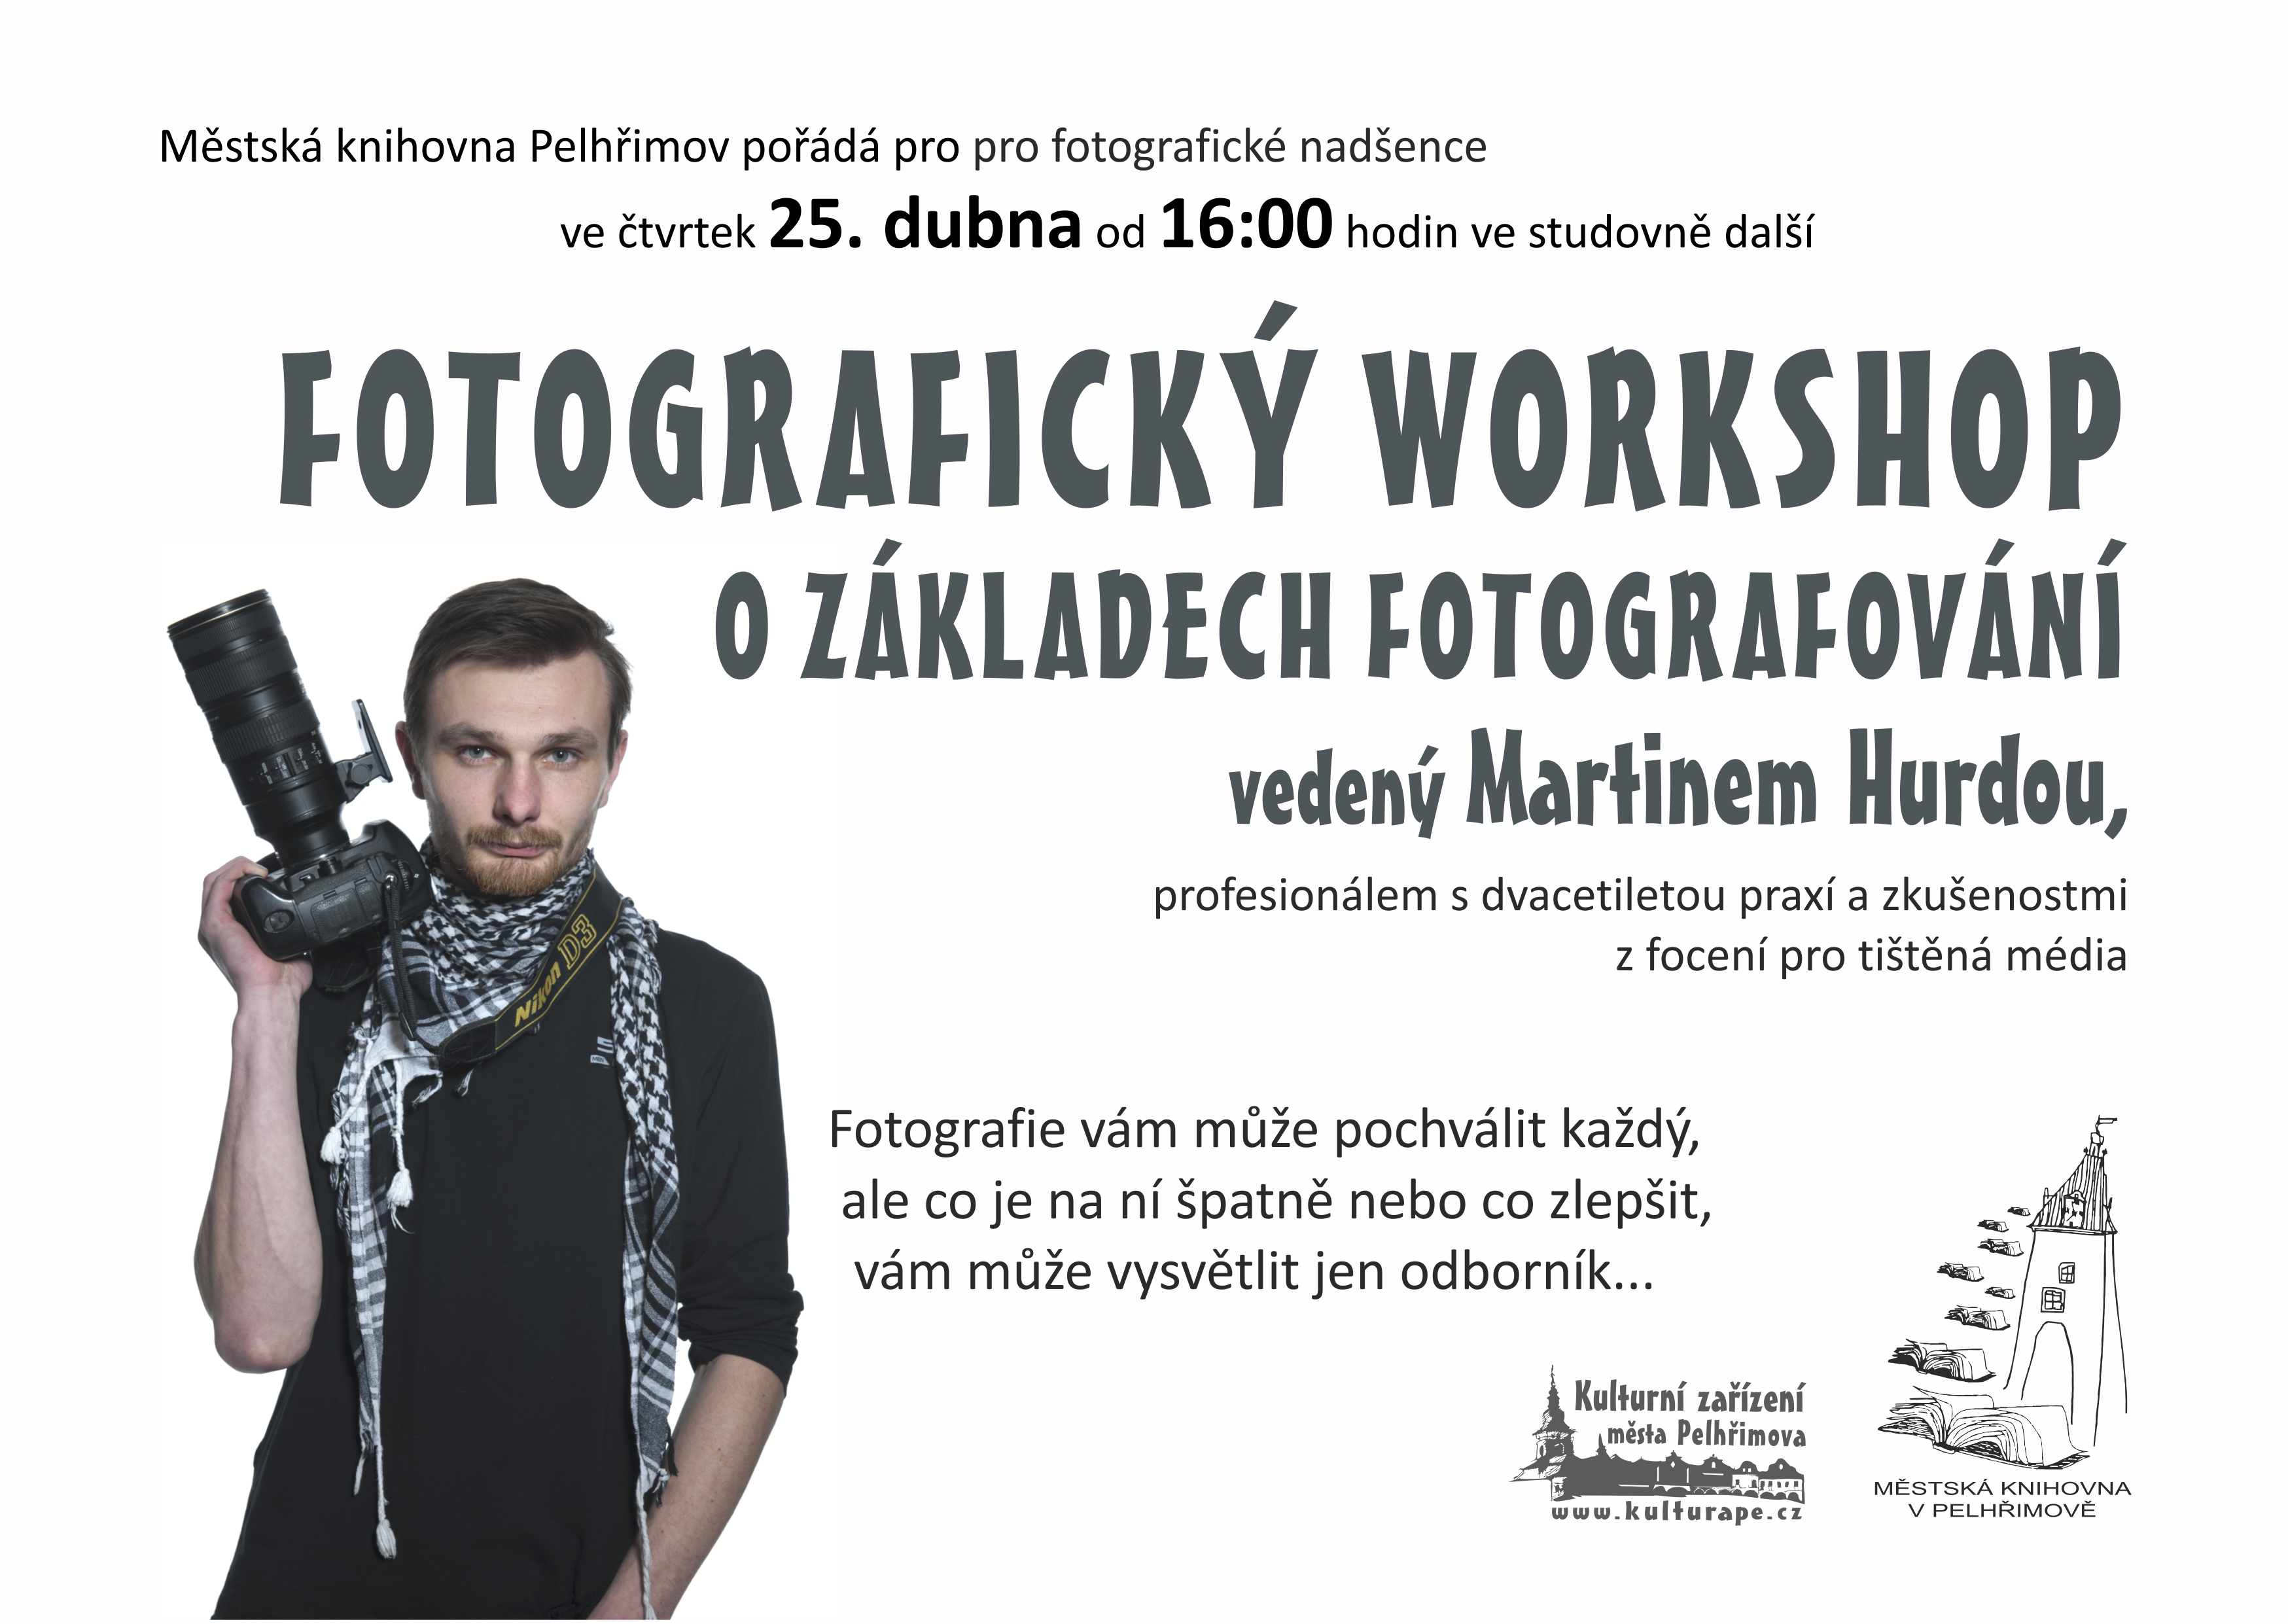 04.25.19. Fotografick workshop